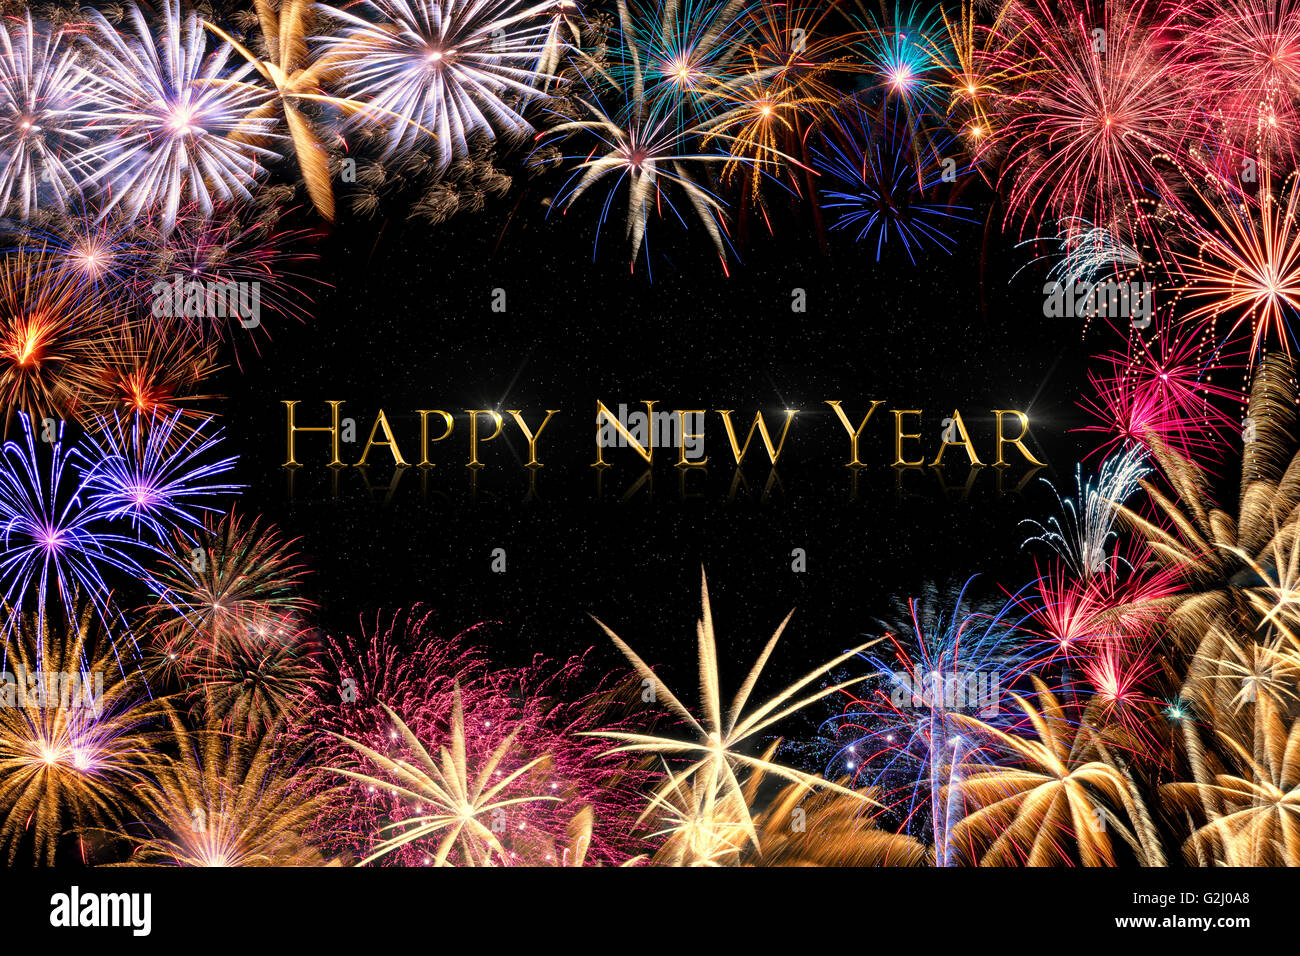 a colorful fireworks border on a black background with golden text happy new year